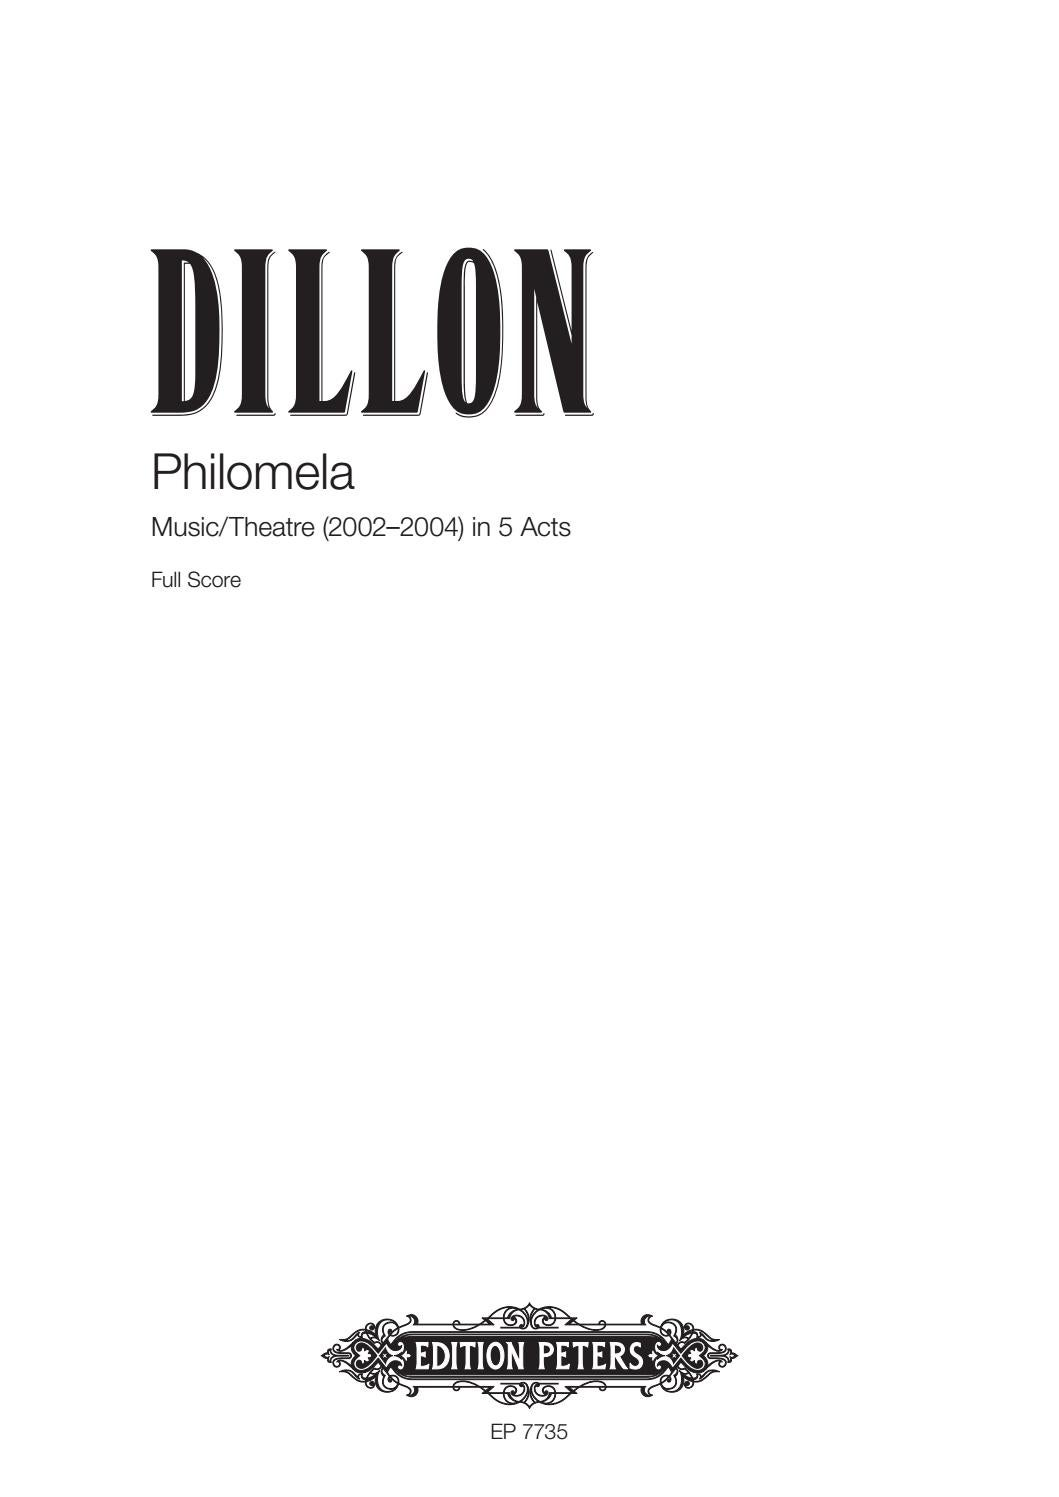 Dillon - Philomela by Edition Peters - Issuu